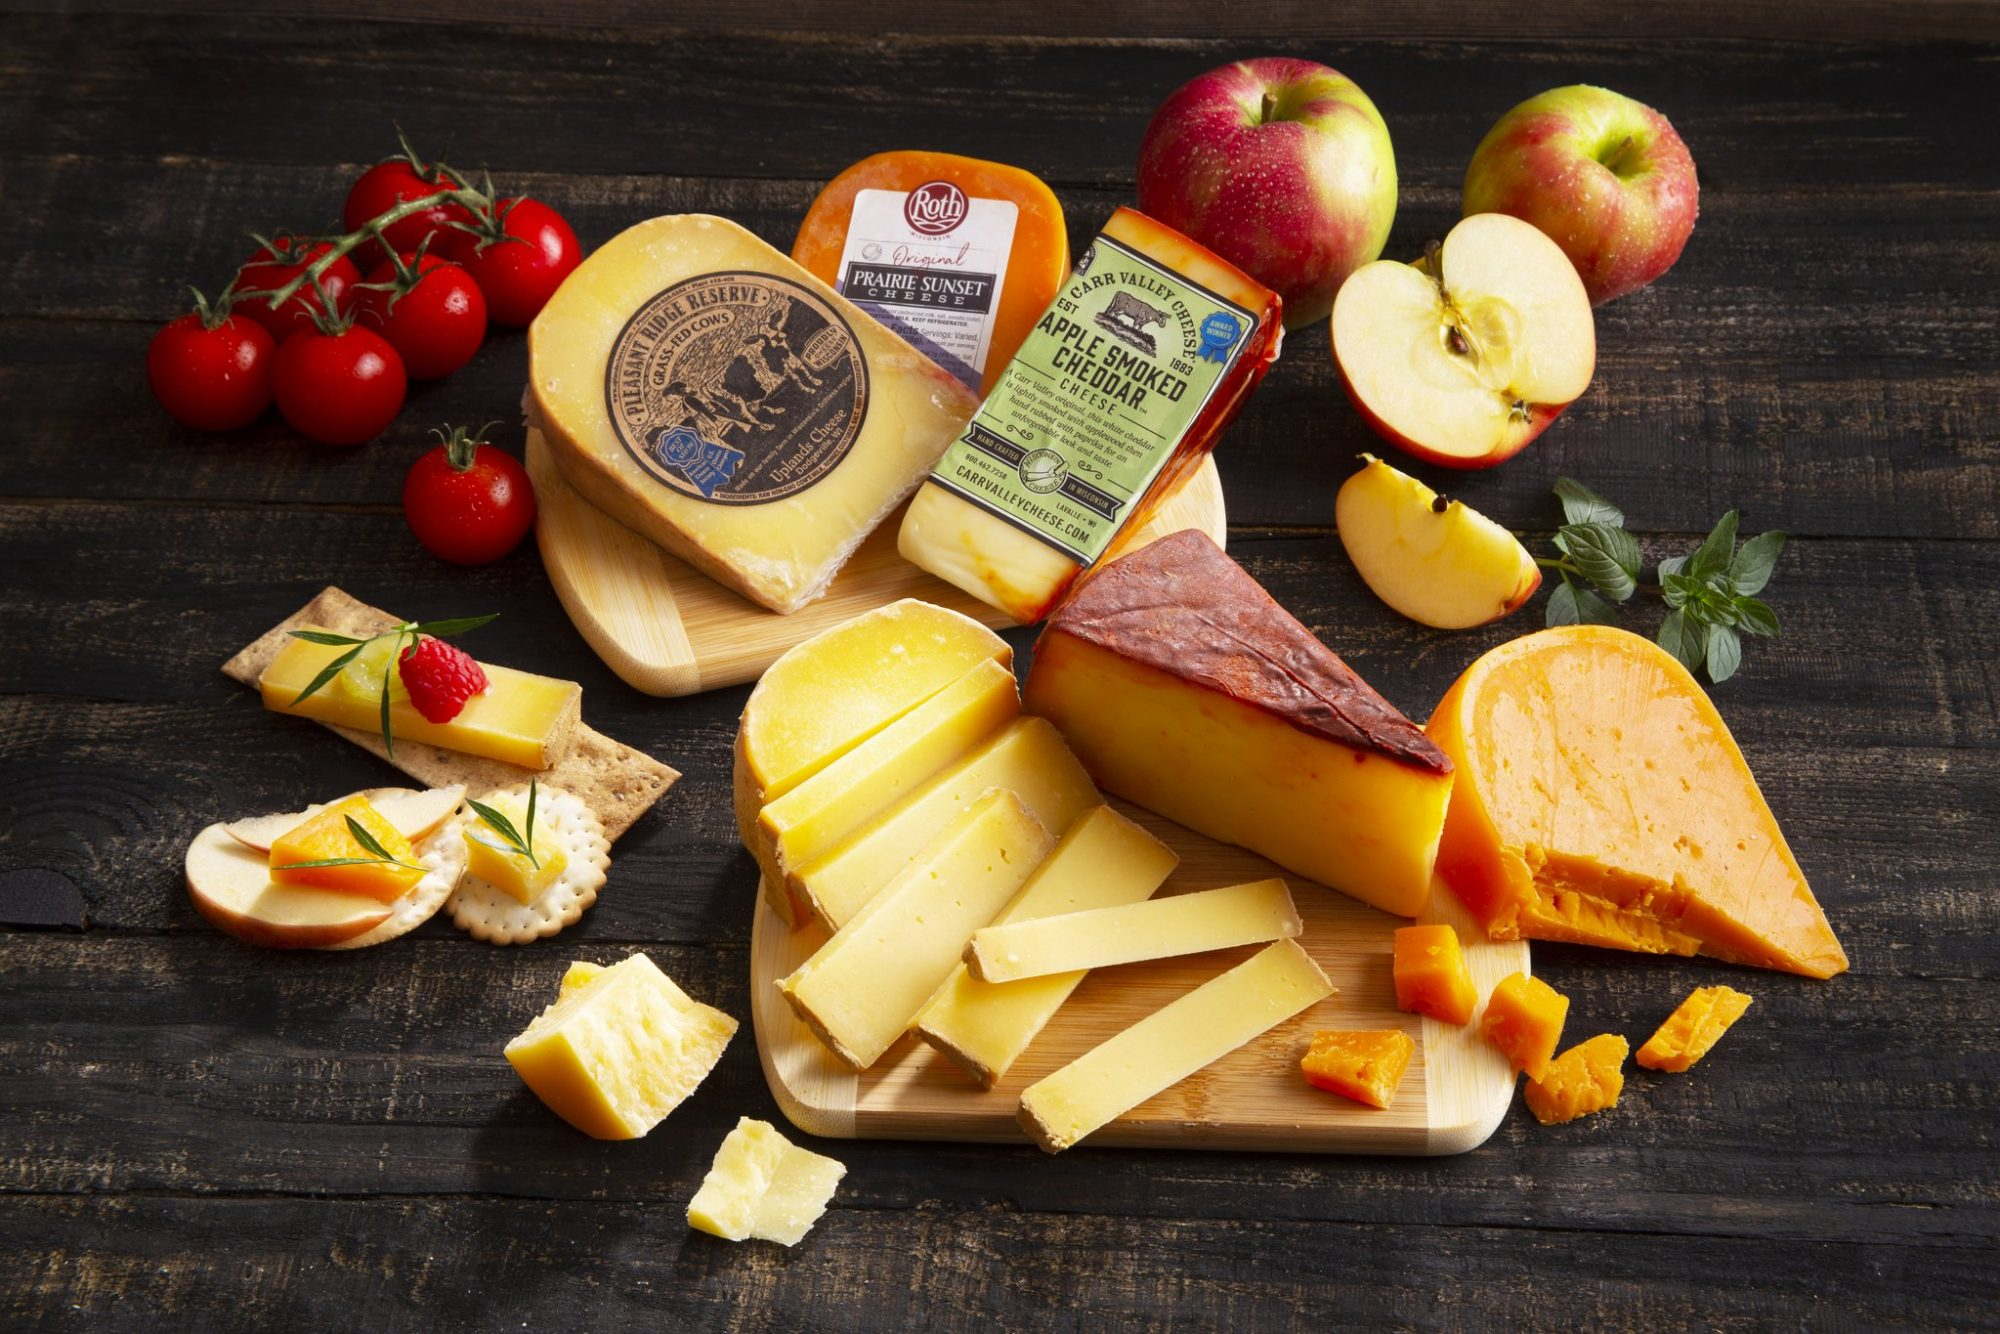 gifts-for-foodies-Wisconsin-Cheese-Award-Winners-Cheese-Board